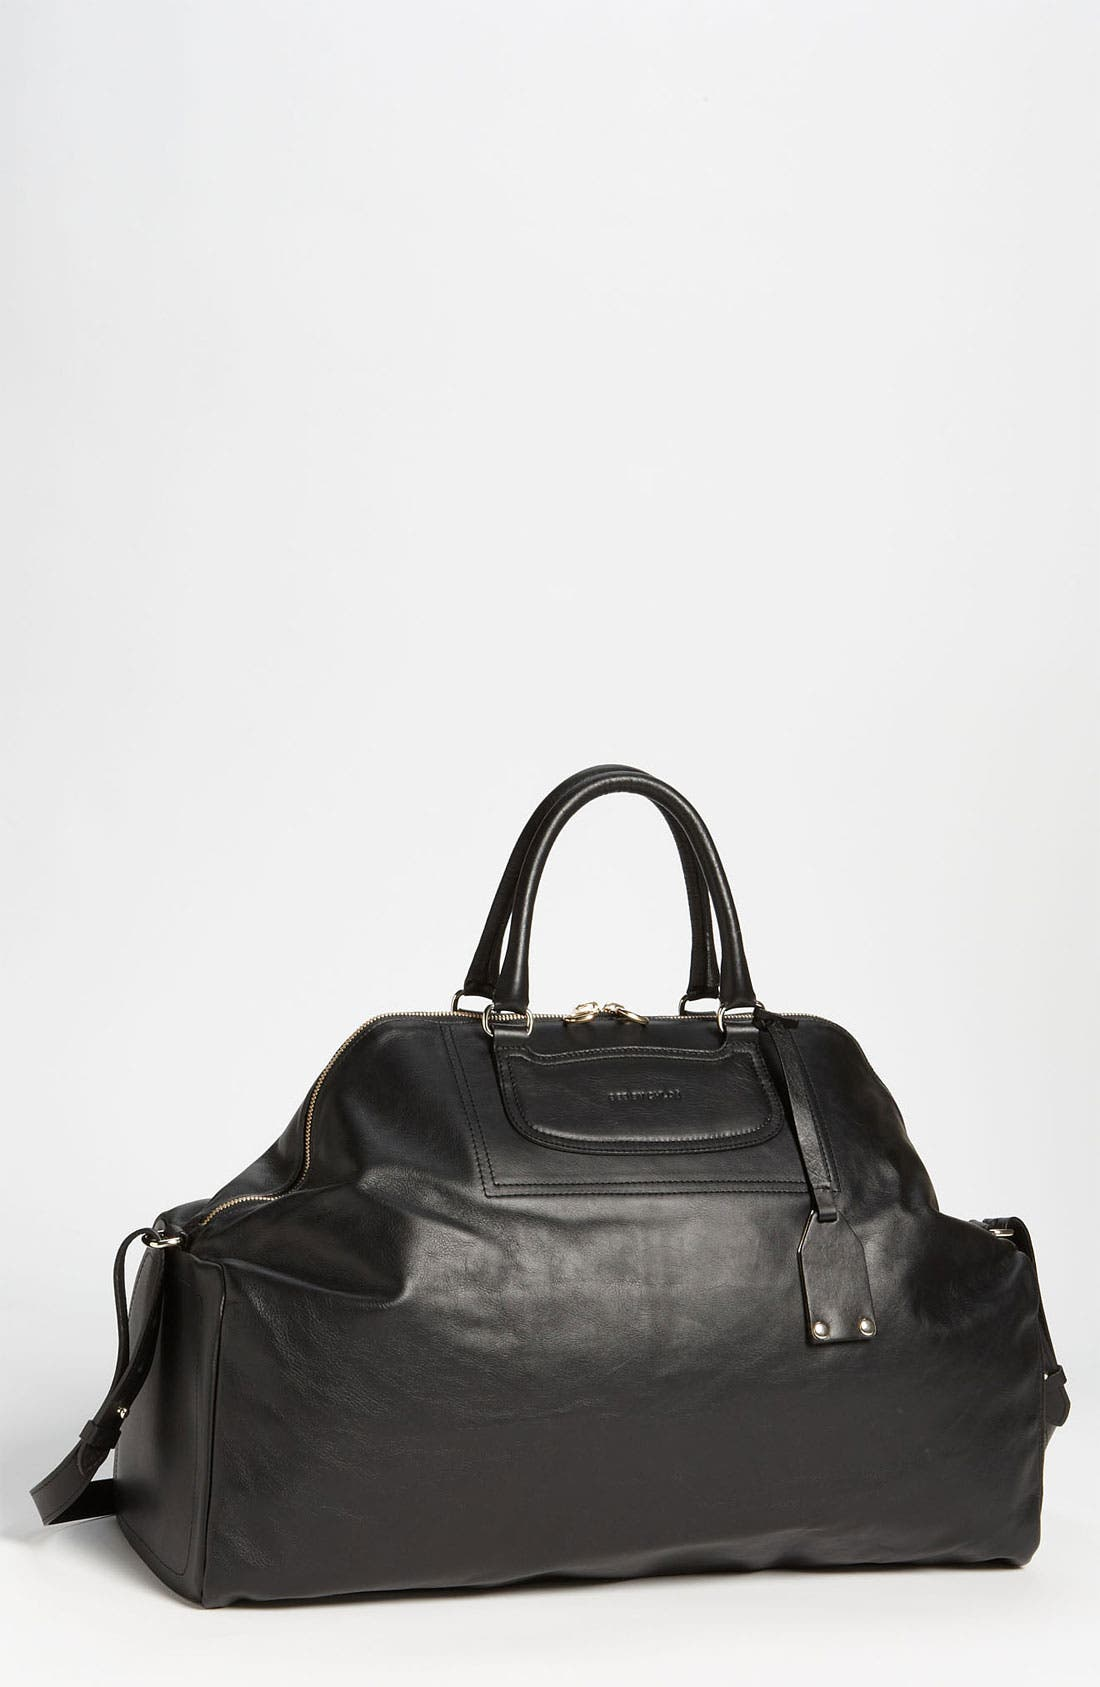 Main Image - See by Chloé 'Albane Big - Double Function' Leather Tote